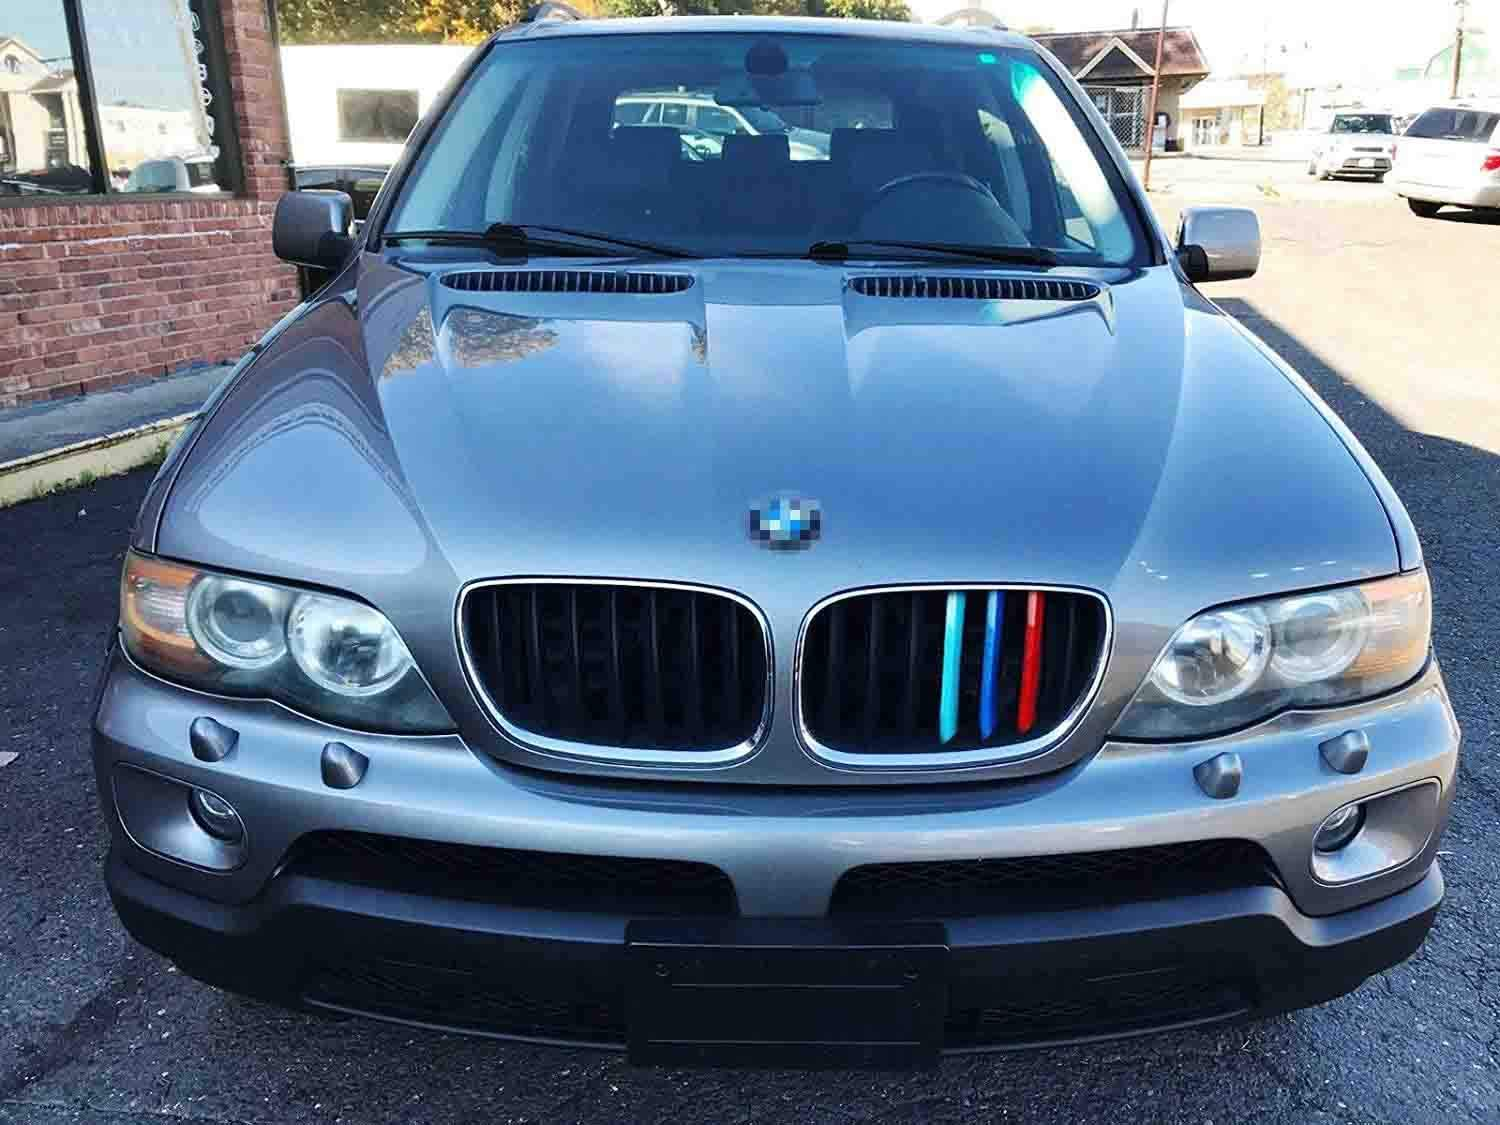 8 Beams iJDMTOY Exact Fit //////M-Colored Grille Insert Trims Compatible With BMW F30 F31 3 Series 320i 328i 330i 335i 340i M-Performance Black Kidney Grilles NOT 11-Beam Standard Grille or 4 Series